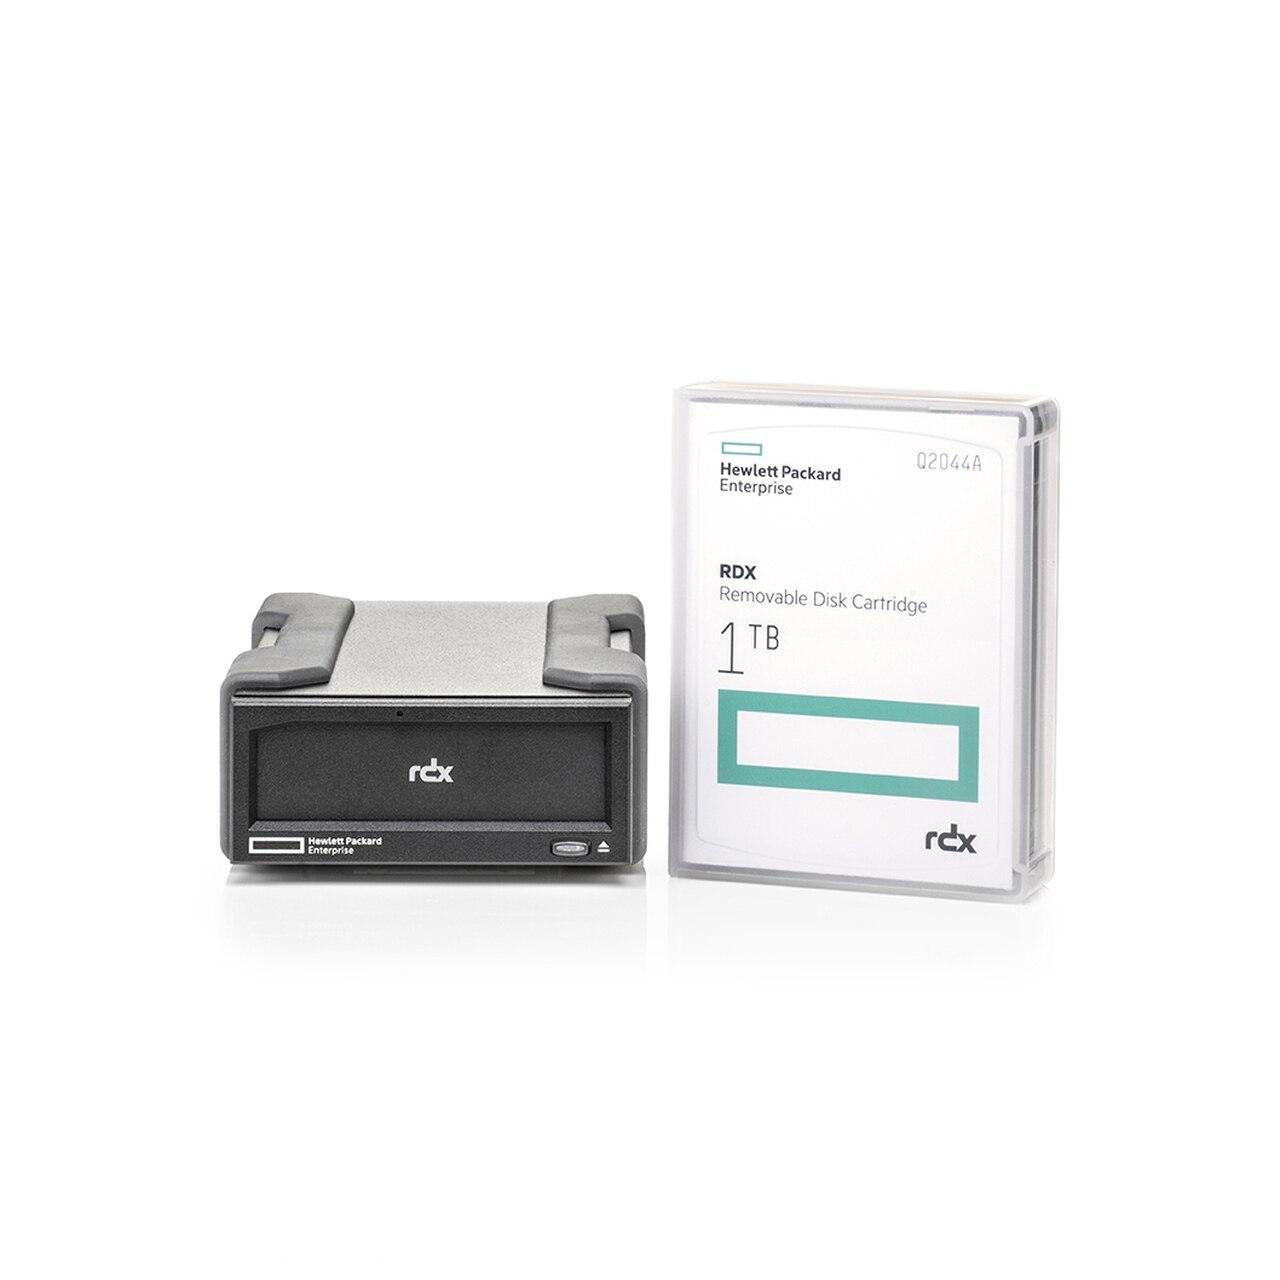 HPE Q2044A 1TB RDX Removable Disk Cartridge